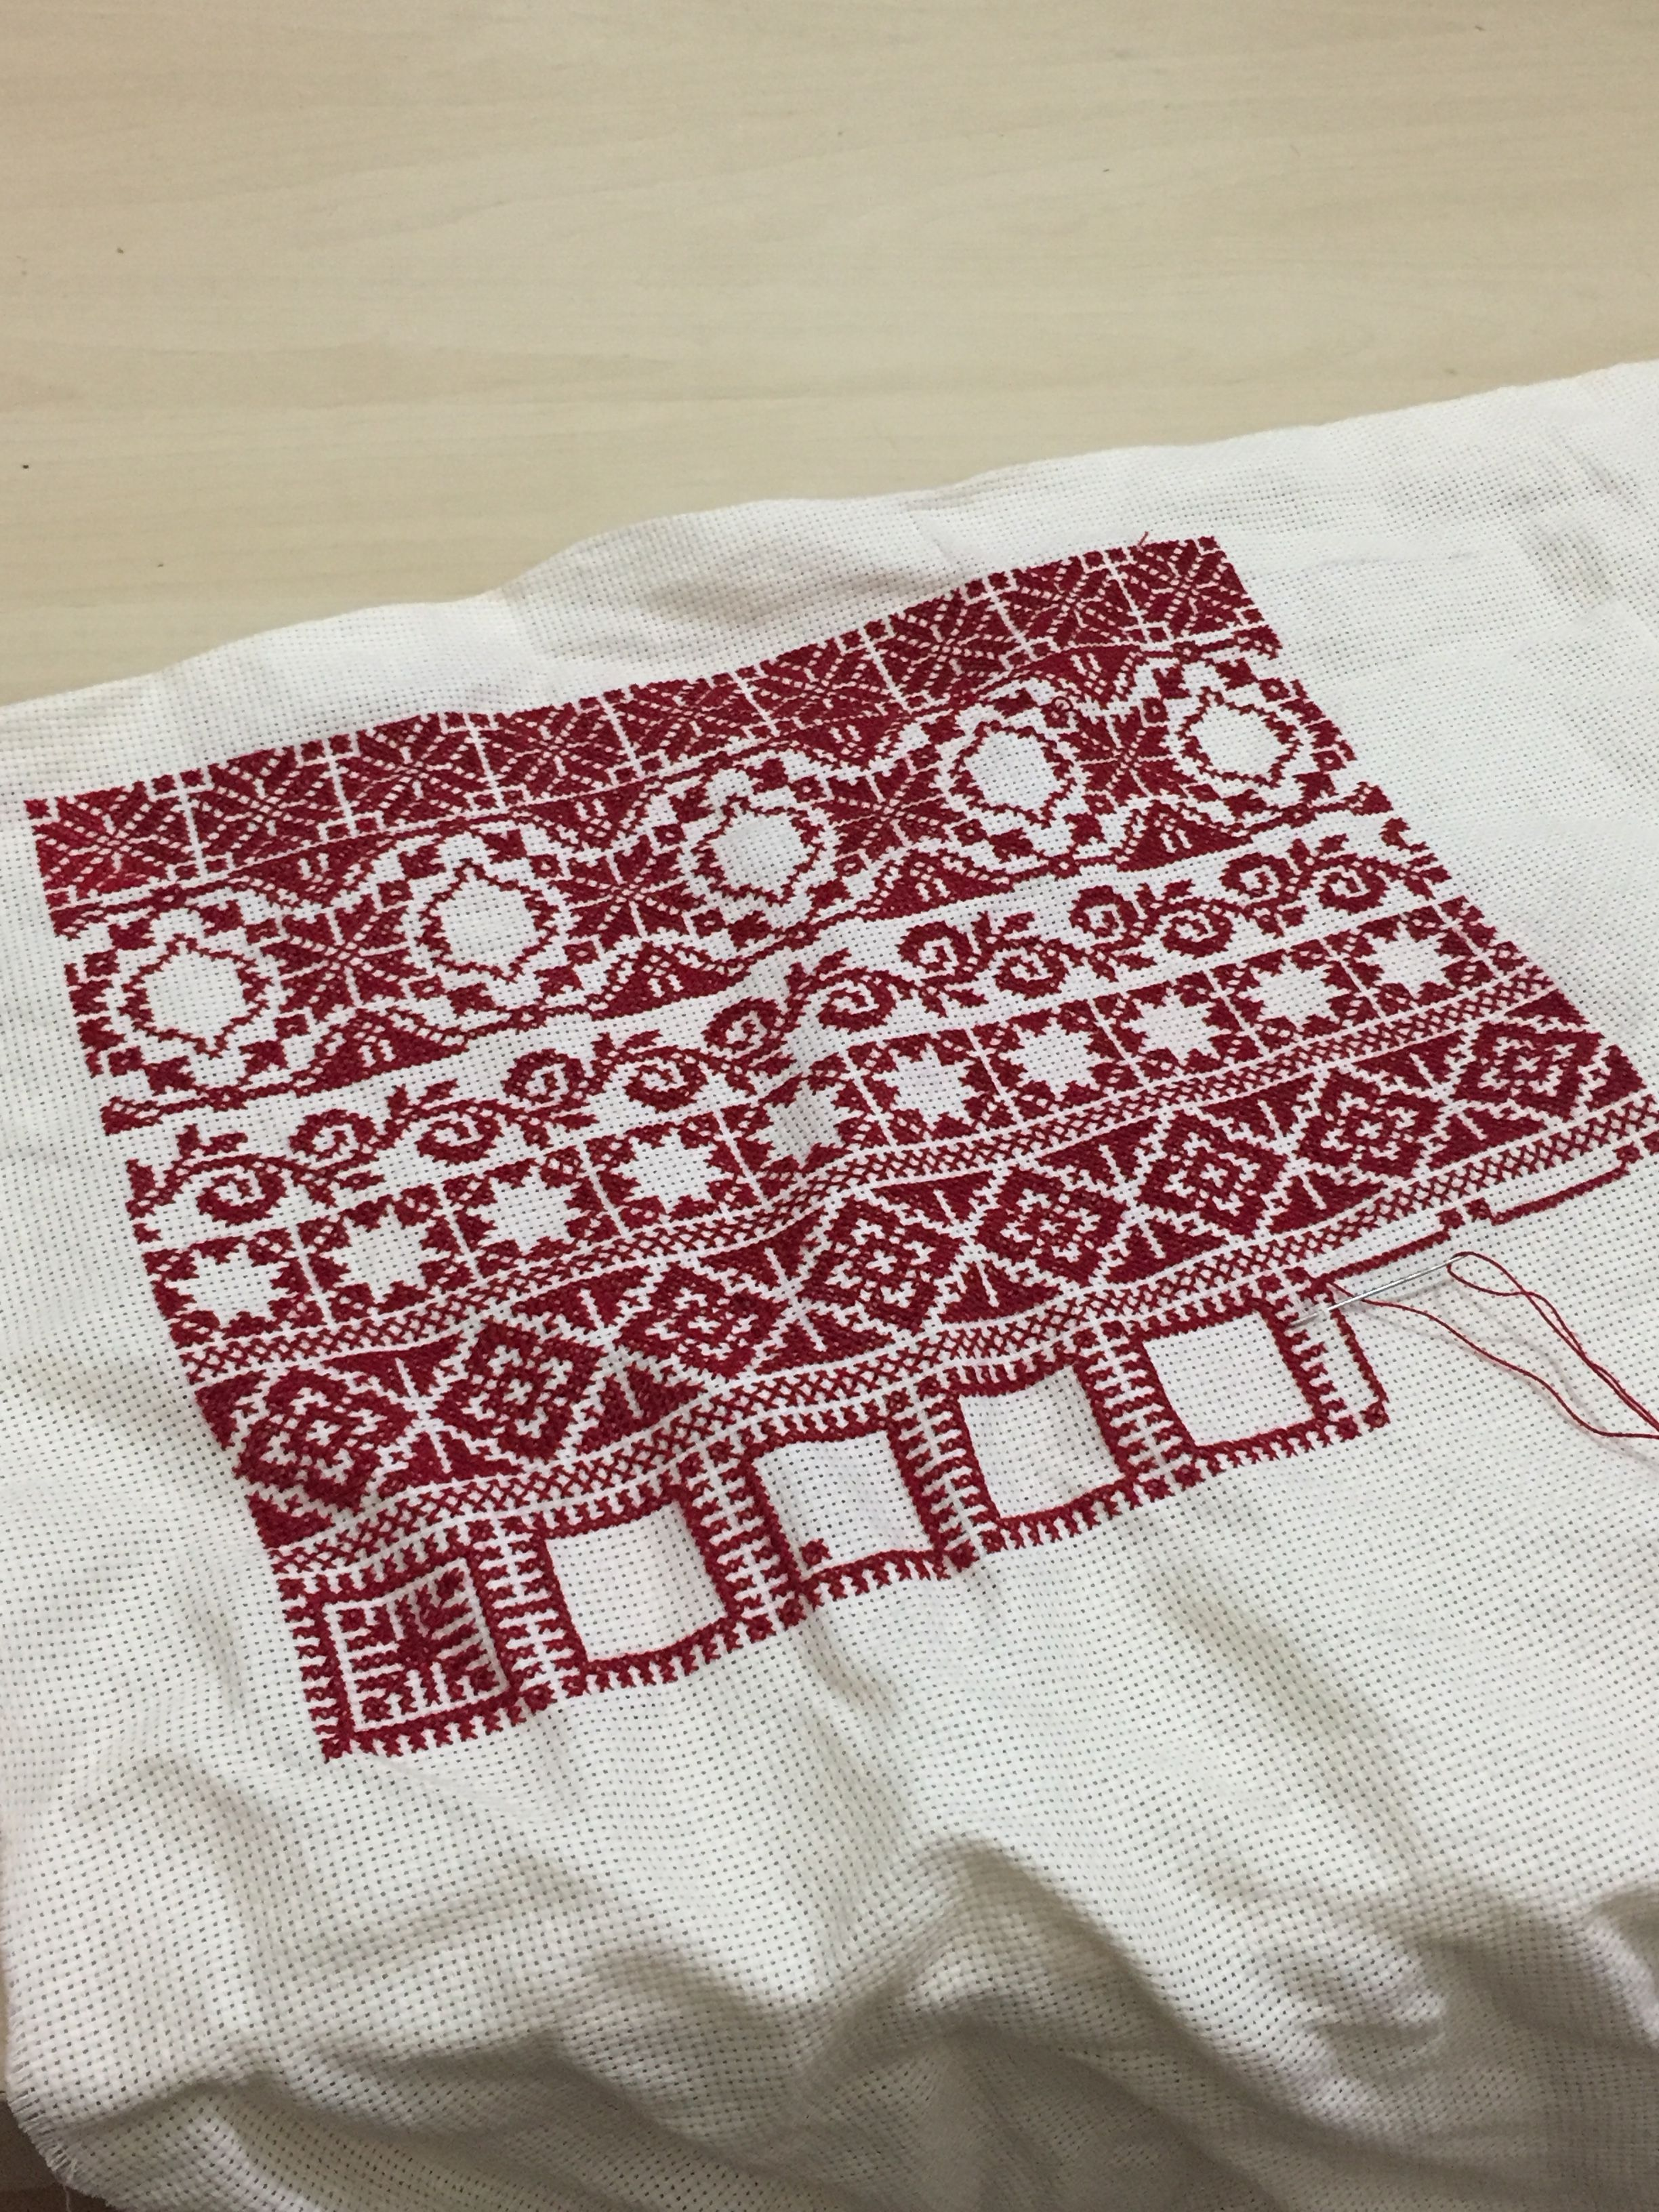 تطريز فلسطيني باترون Cross Stitch Cross Stitch Cross Stitch Patterns Hand Embroidery